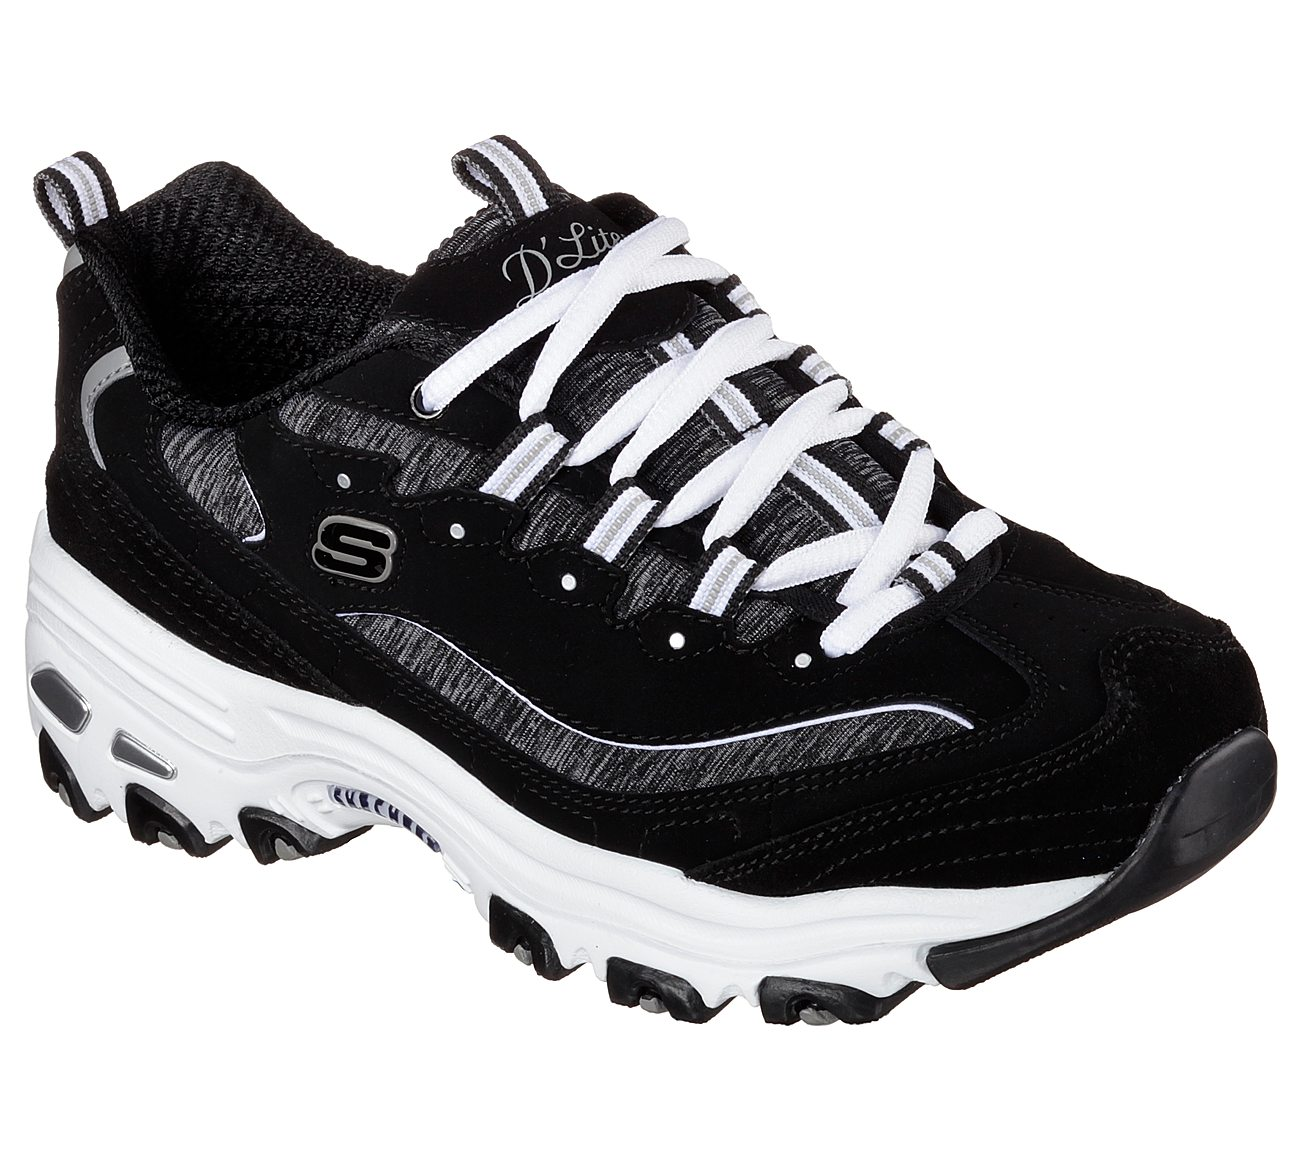 skechers d'lites animal print